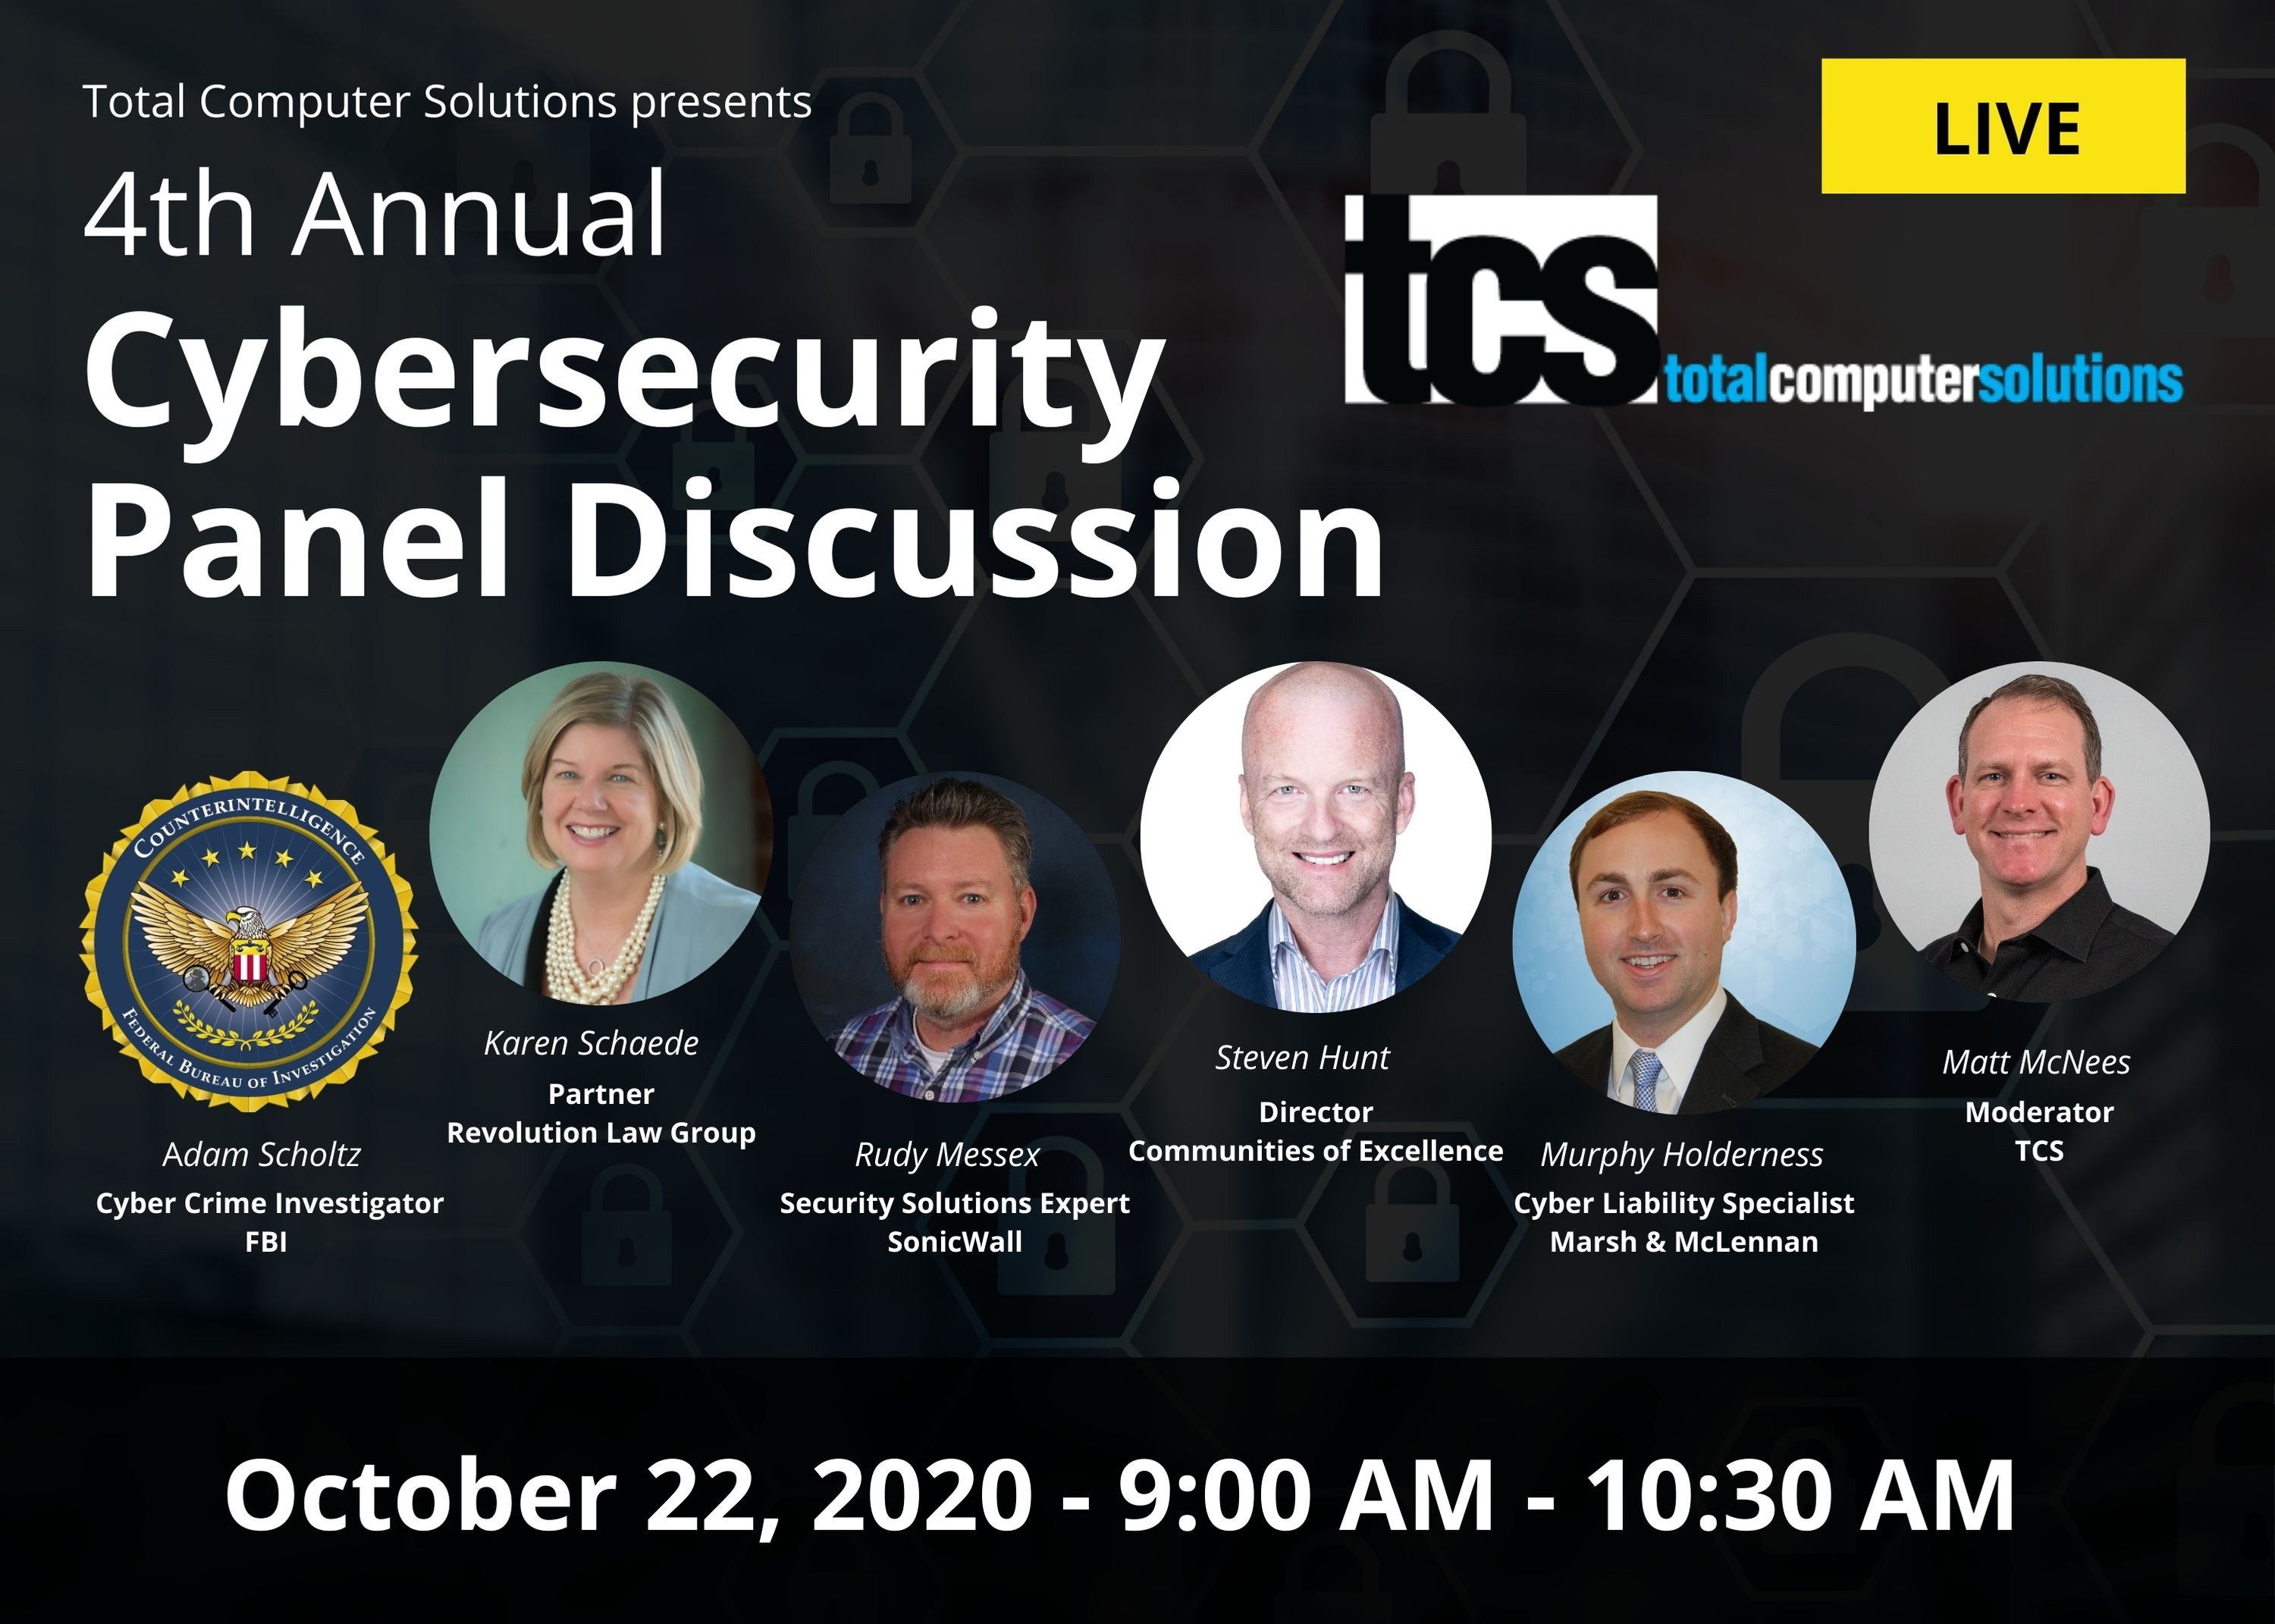 Copy of 4th Annual Cybersecurity Panel Discussion